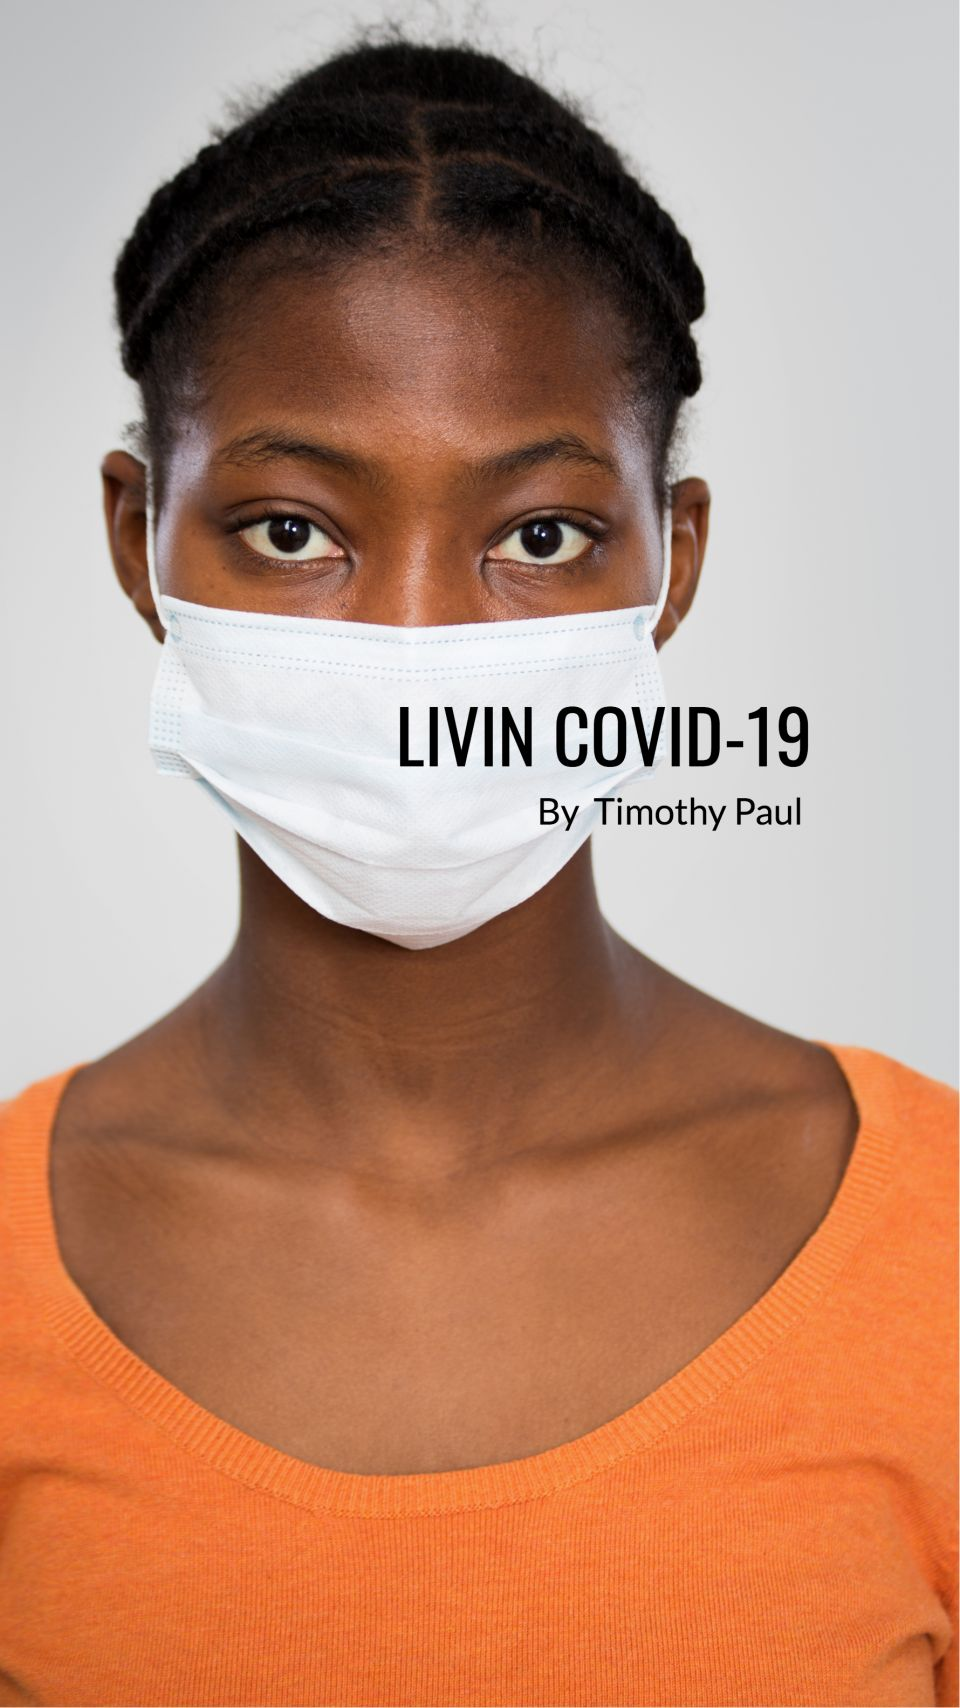 Timothy Pauls' new song LIVIN COVID-19